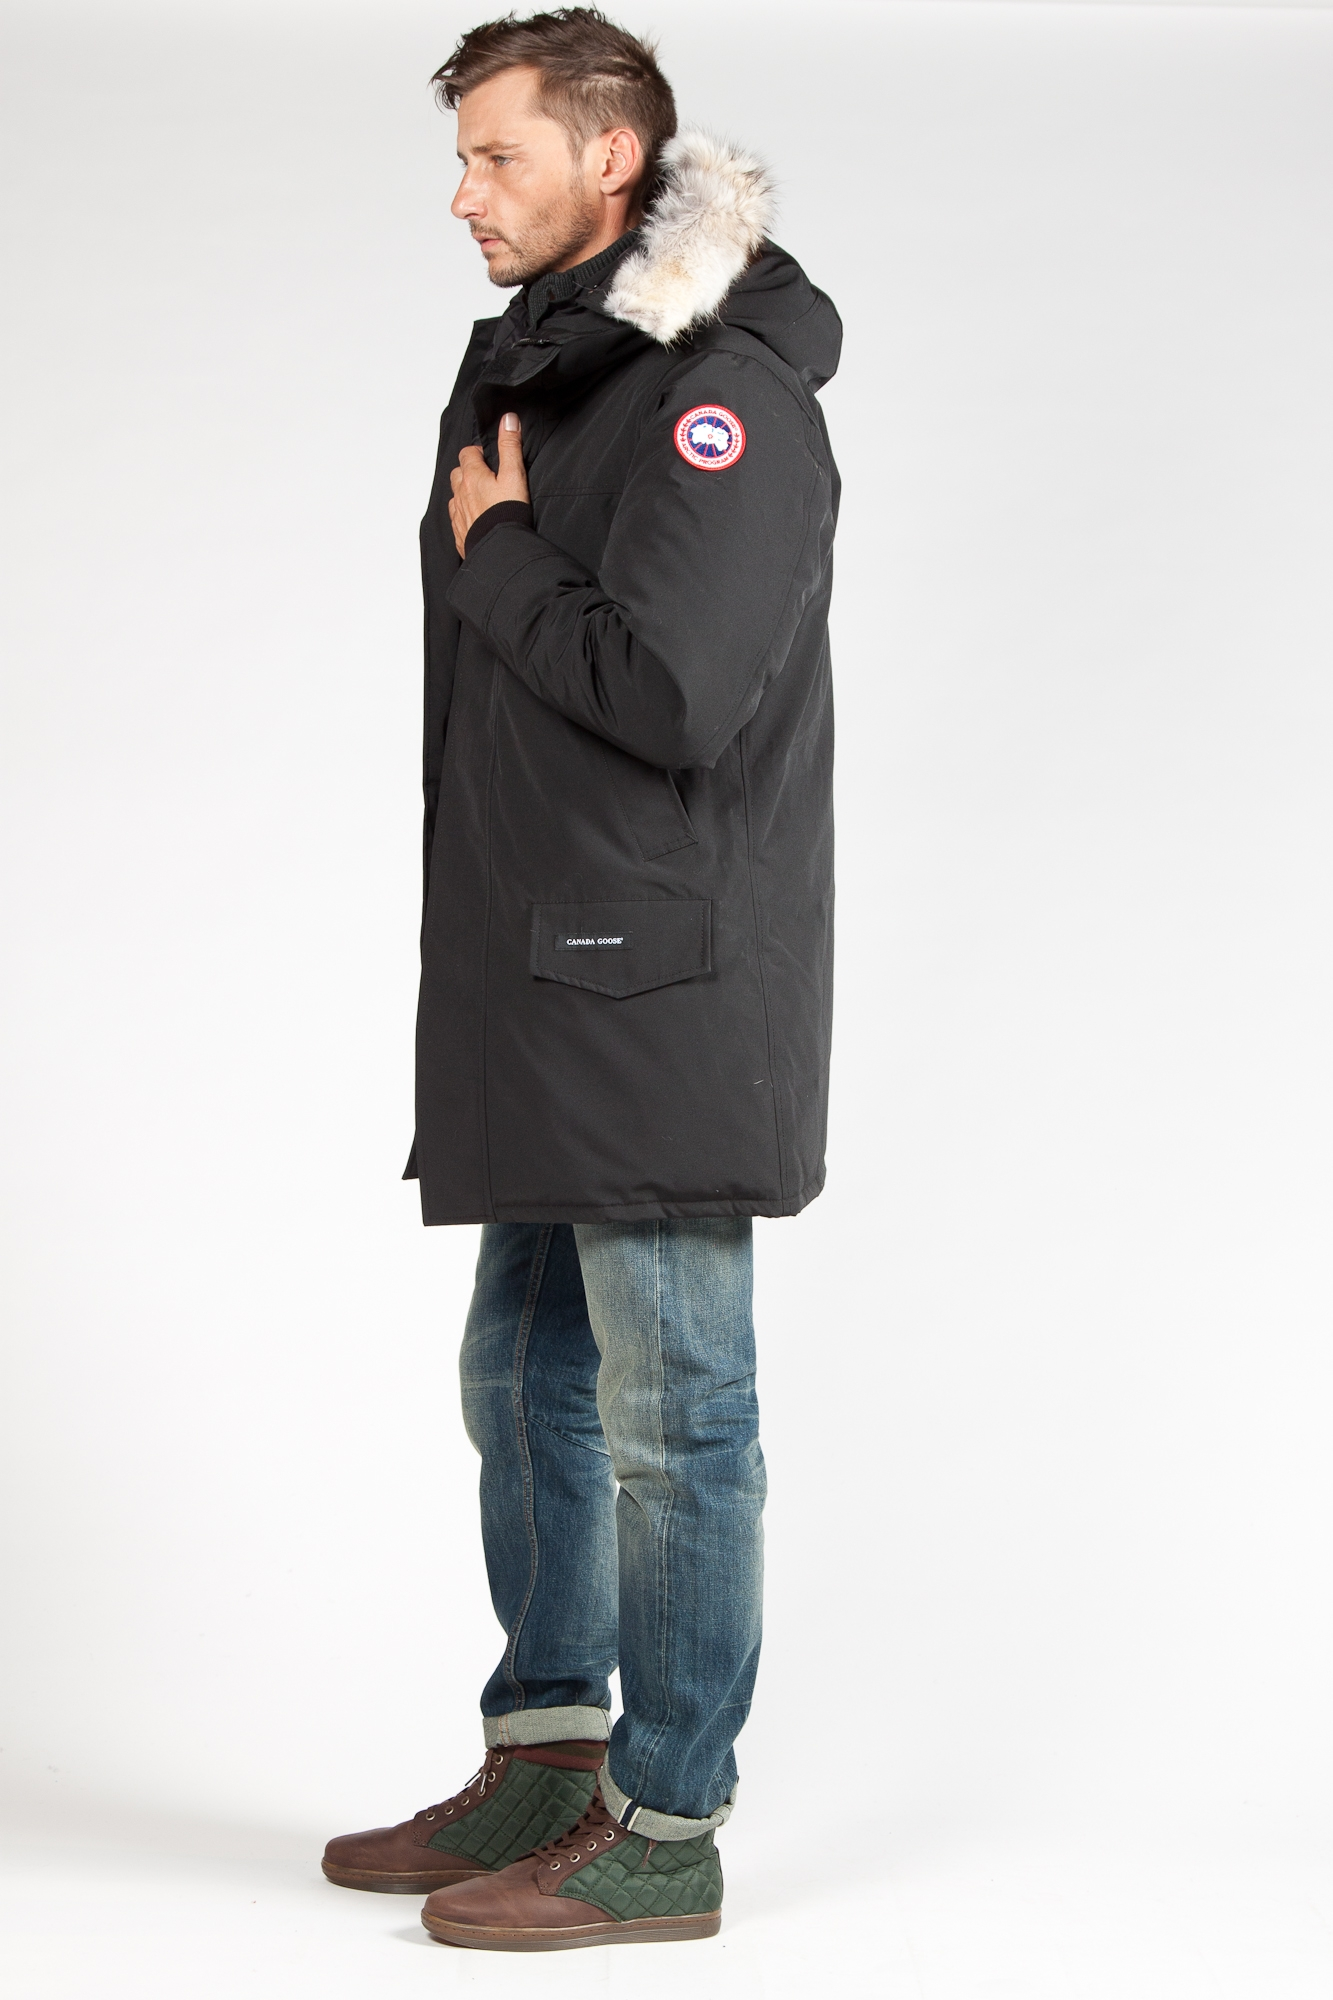 parka fourrure homme canada goose canada goose toronto replica authentic. Black Bedroom Furniture Sets. Home Design Ideas